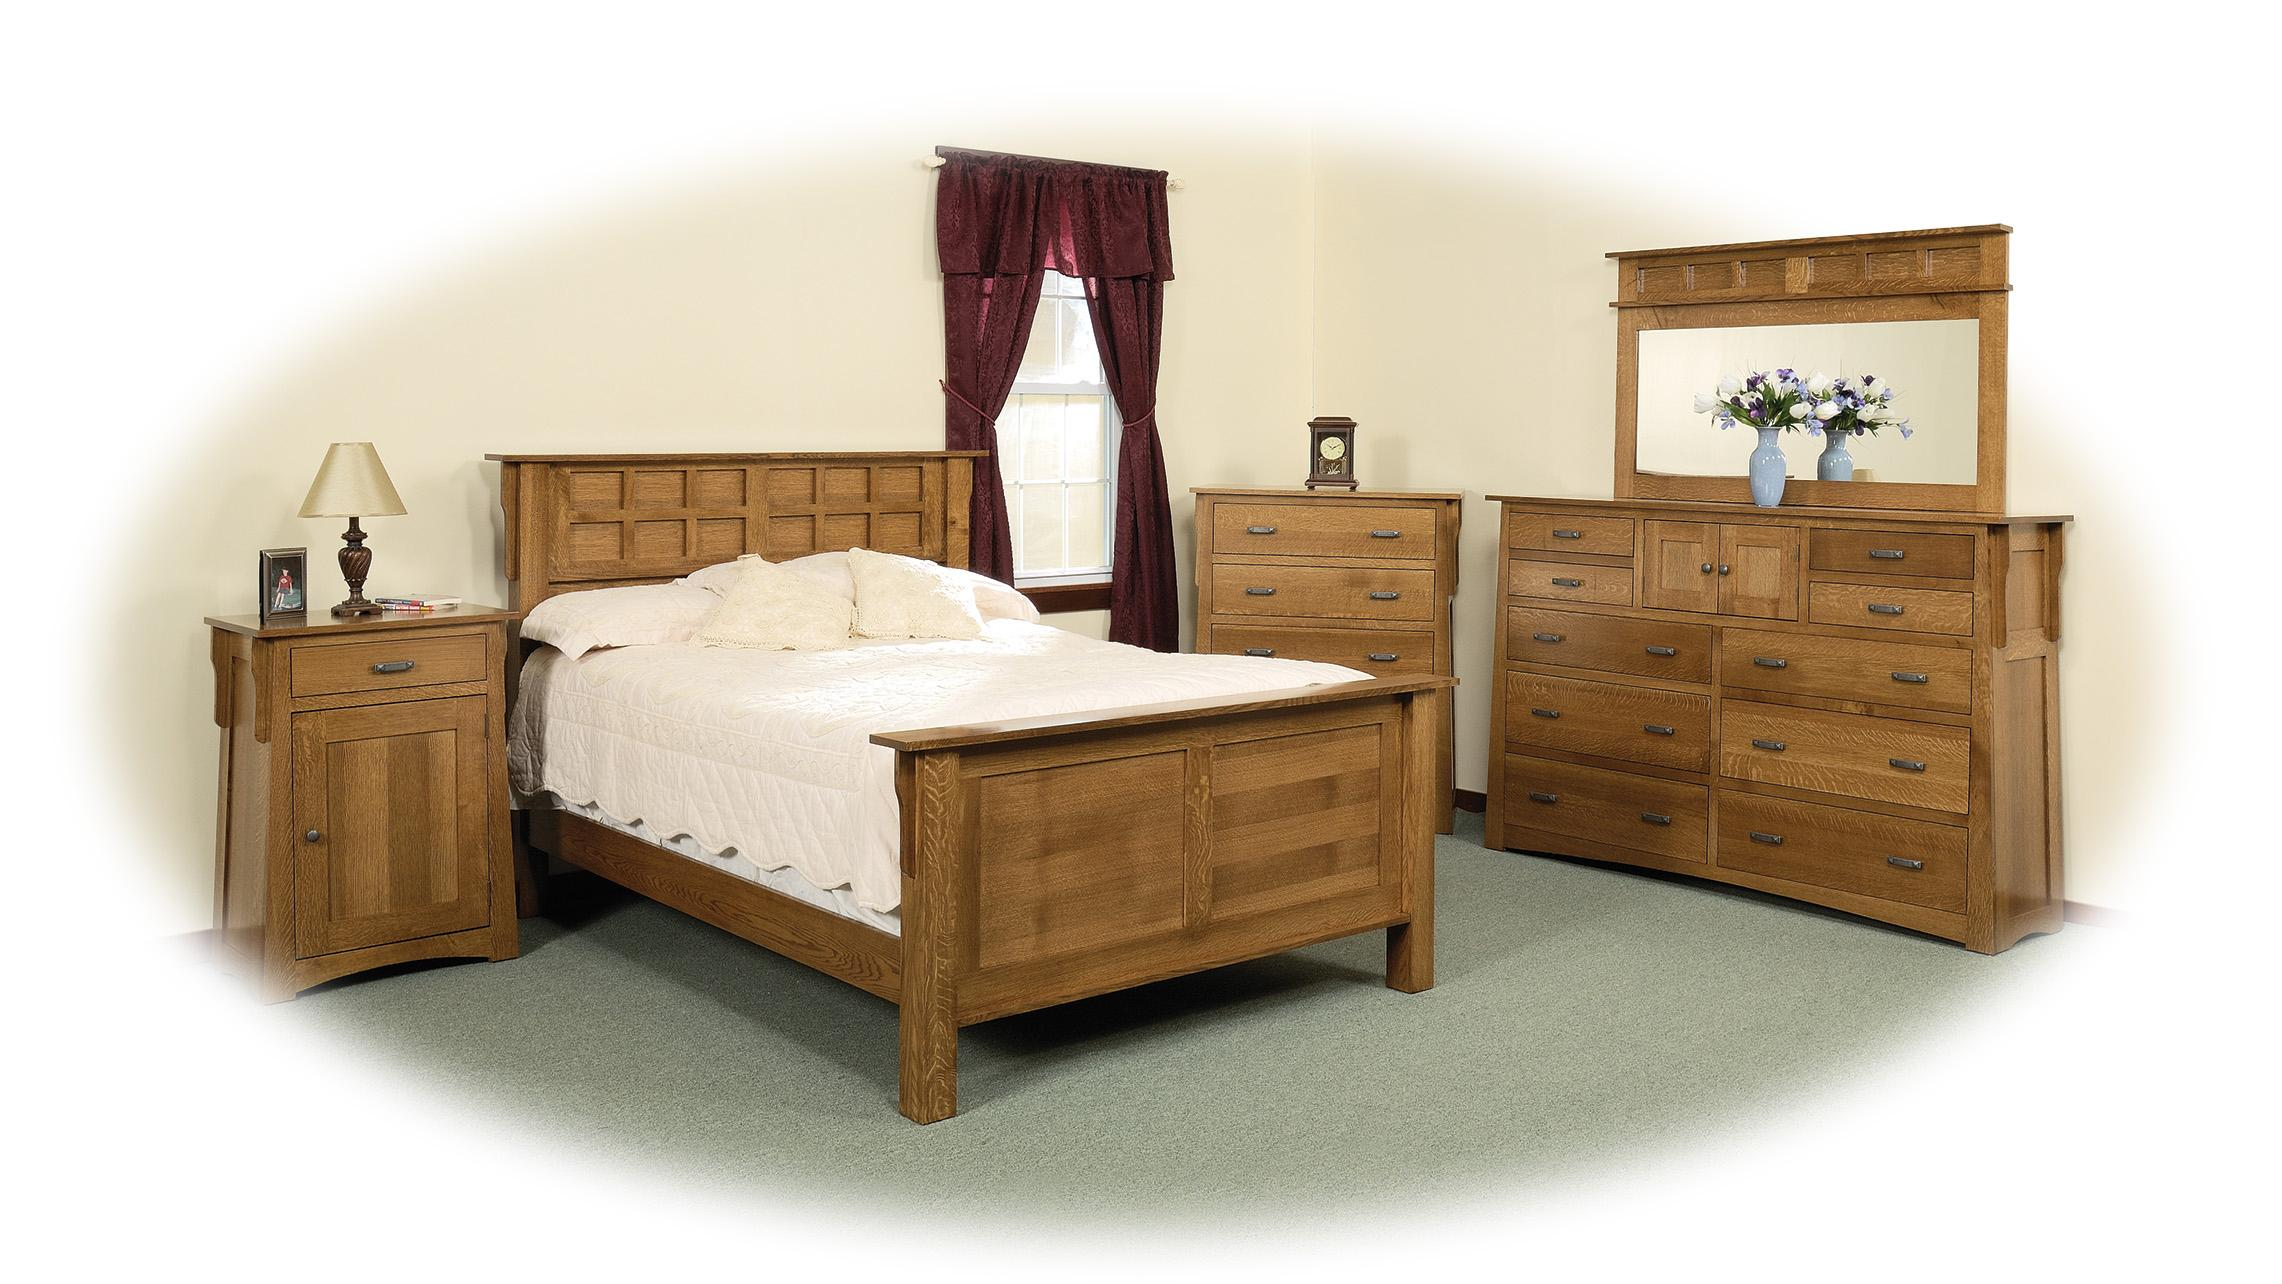 Arts and Crafts Style Bedroom Furniture 2282 x 1284